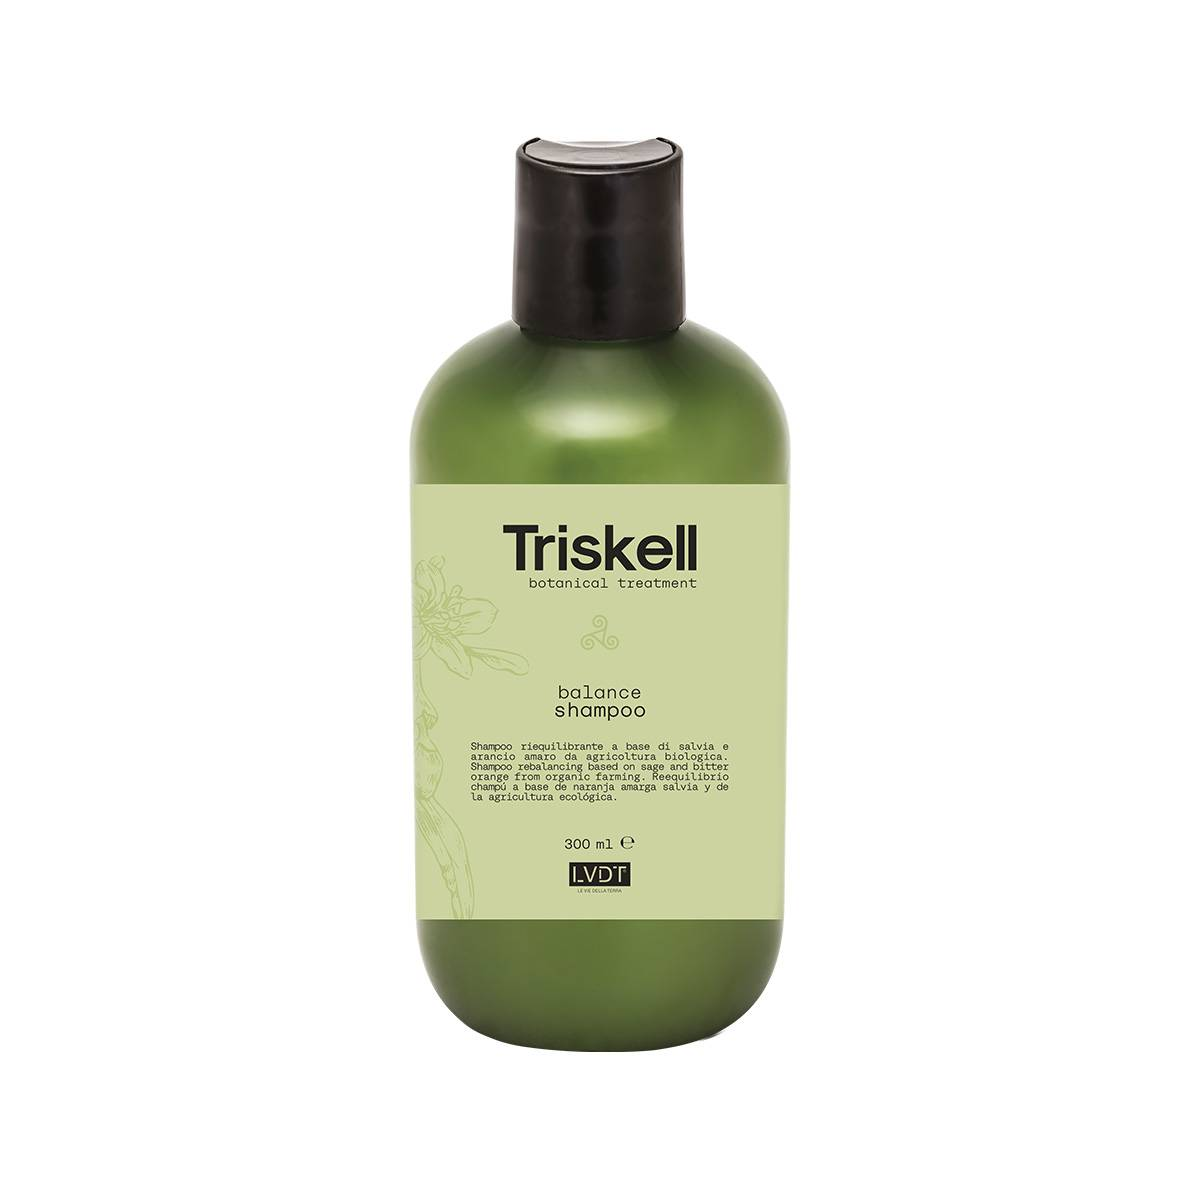 Balance Shampoo 300 Ml Triskell Nuova Botanical Treatment